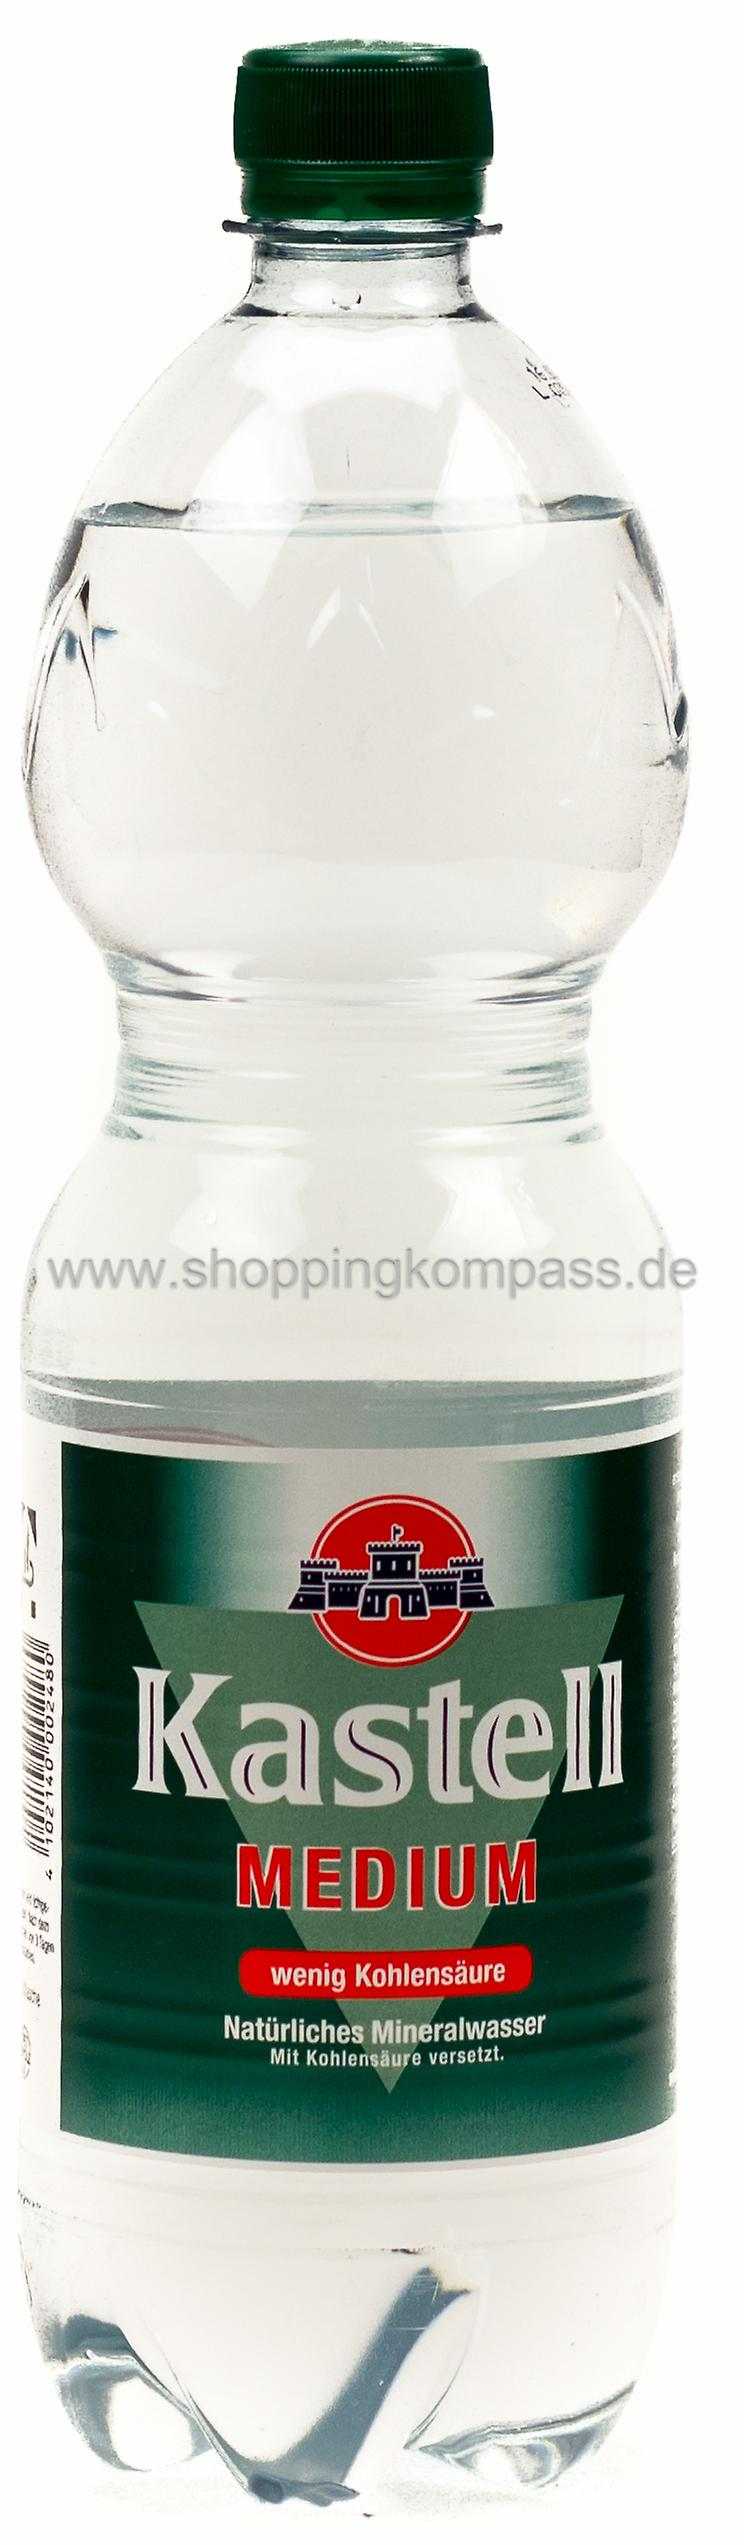 Kastell Mineralwasser Medium 1 l PET Einweg